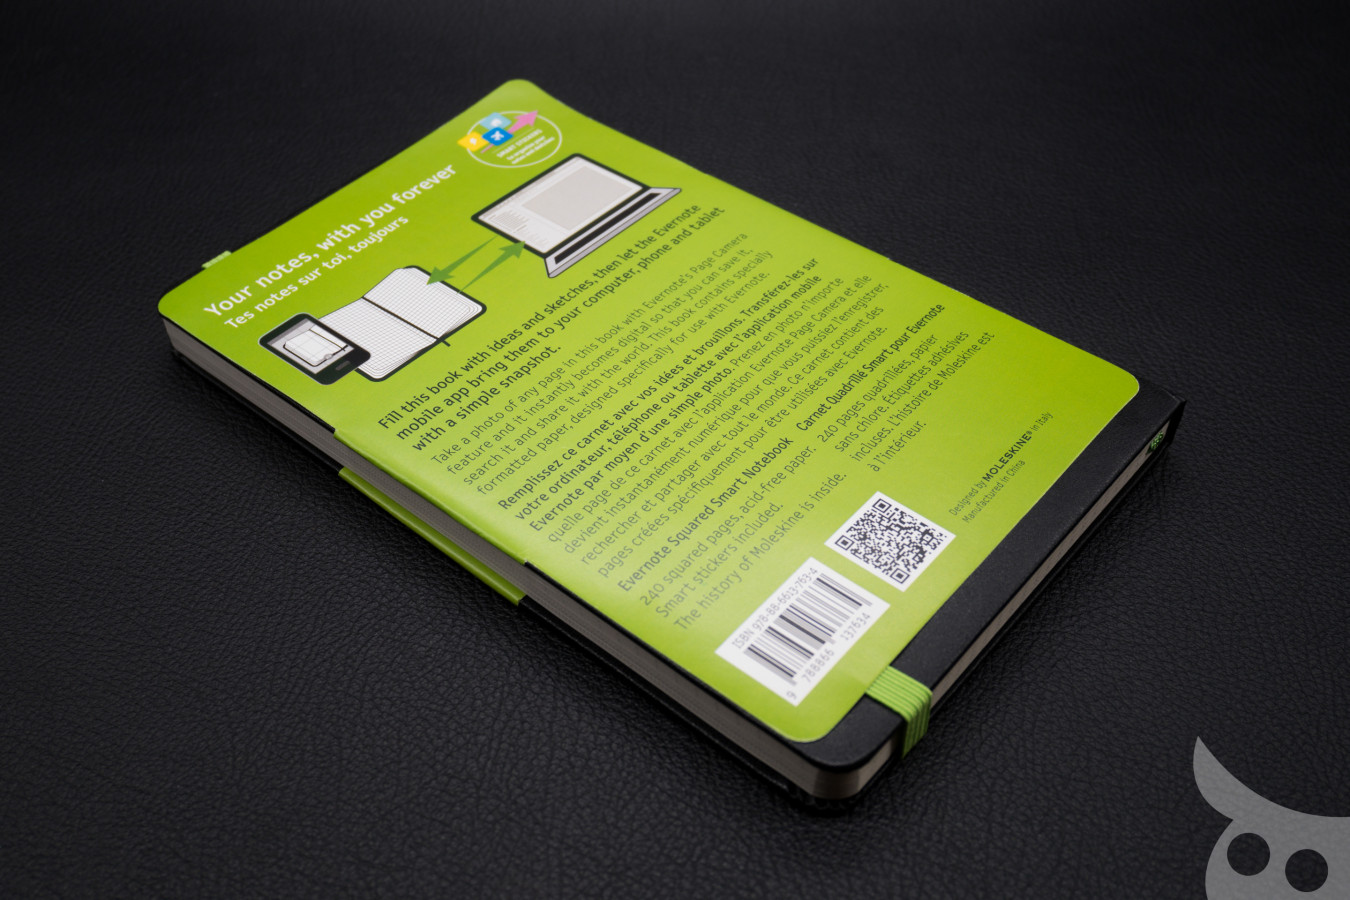 Moleskine Evernote Smart Notebook : Large